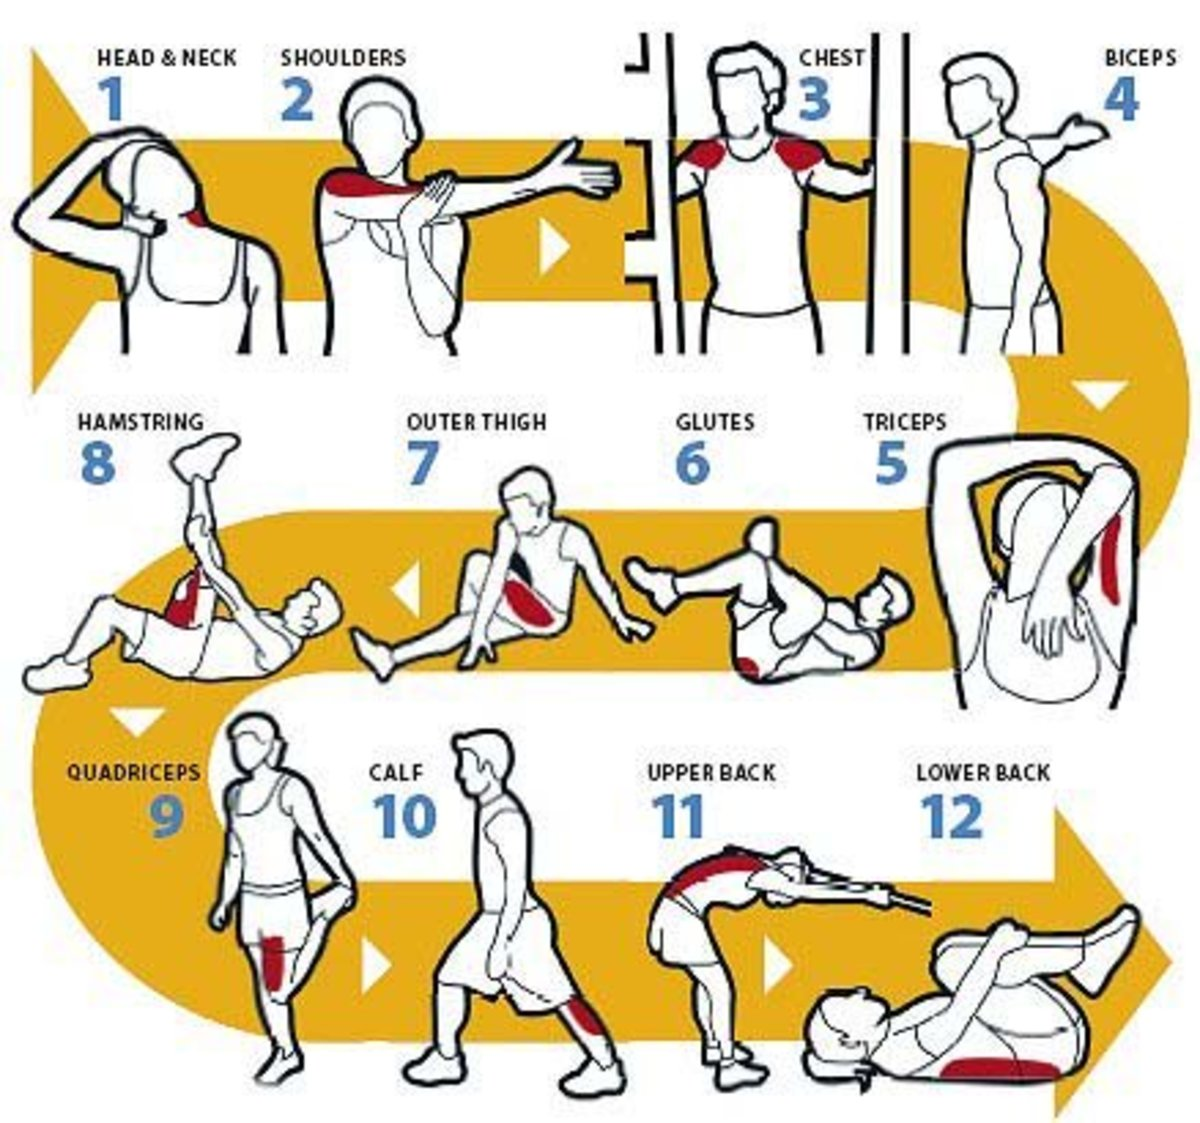 A basic full body static stretching routine.